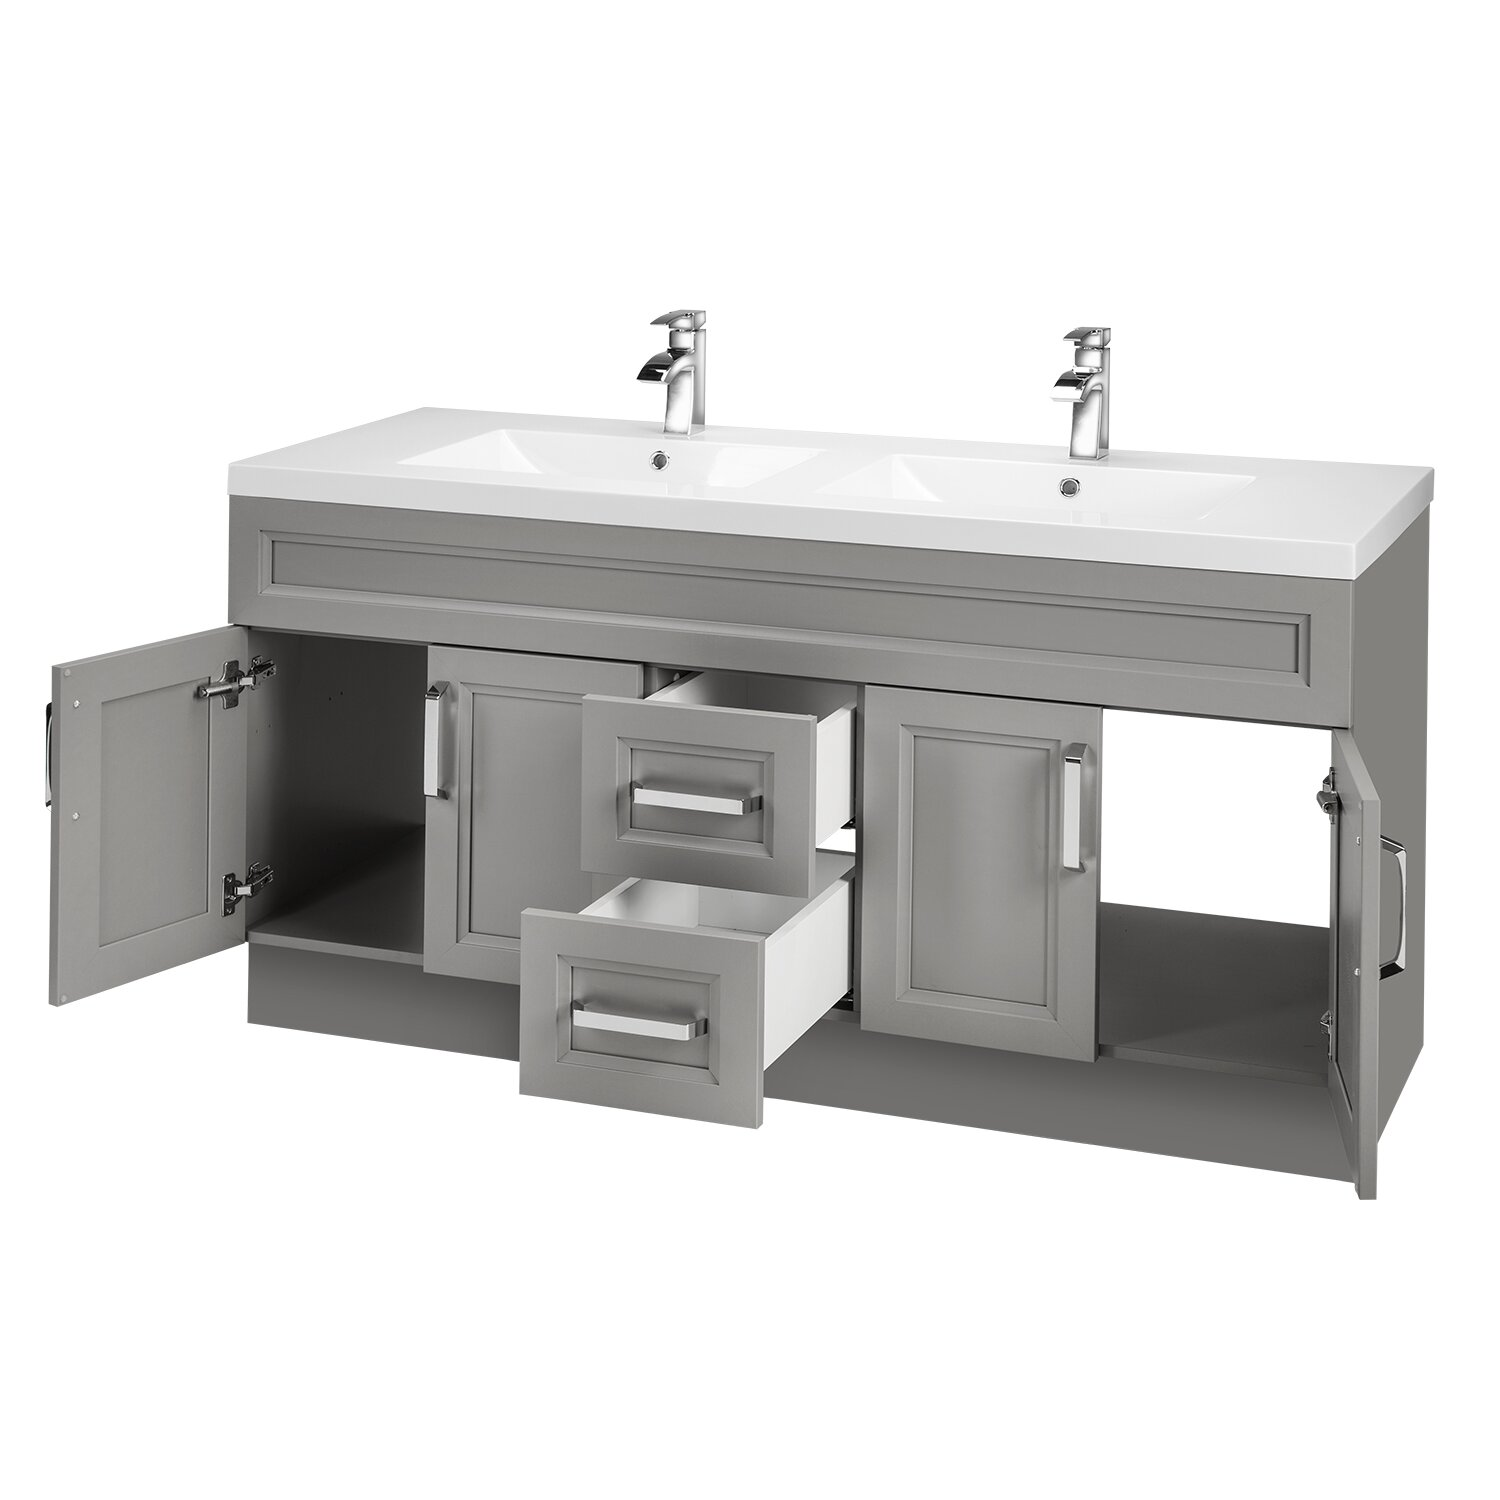 Cutler Kitchen Bath Urban 60 Vanity Double Bowl Reviews